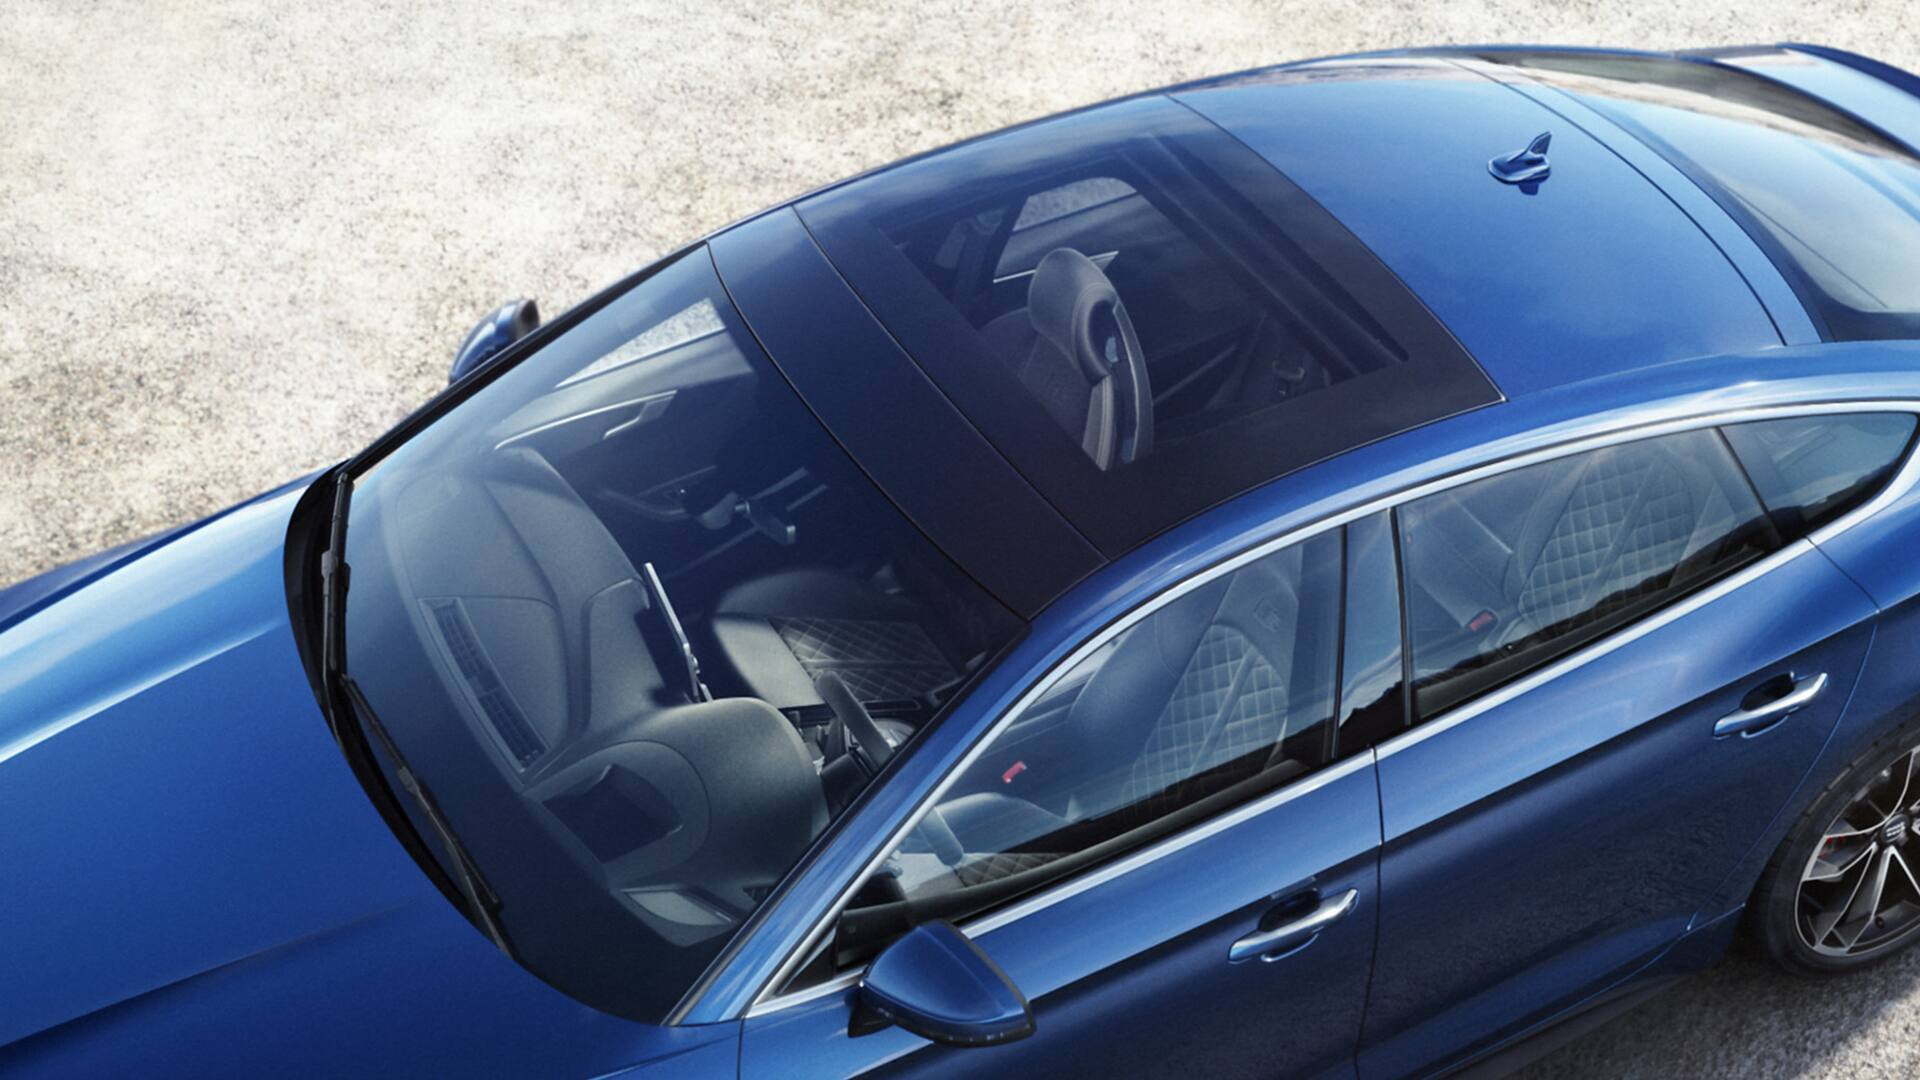 panoramic glass roof Audi S5 Sportback